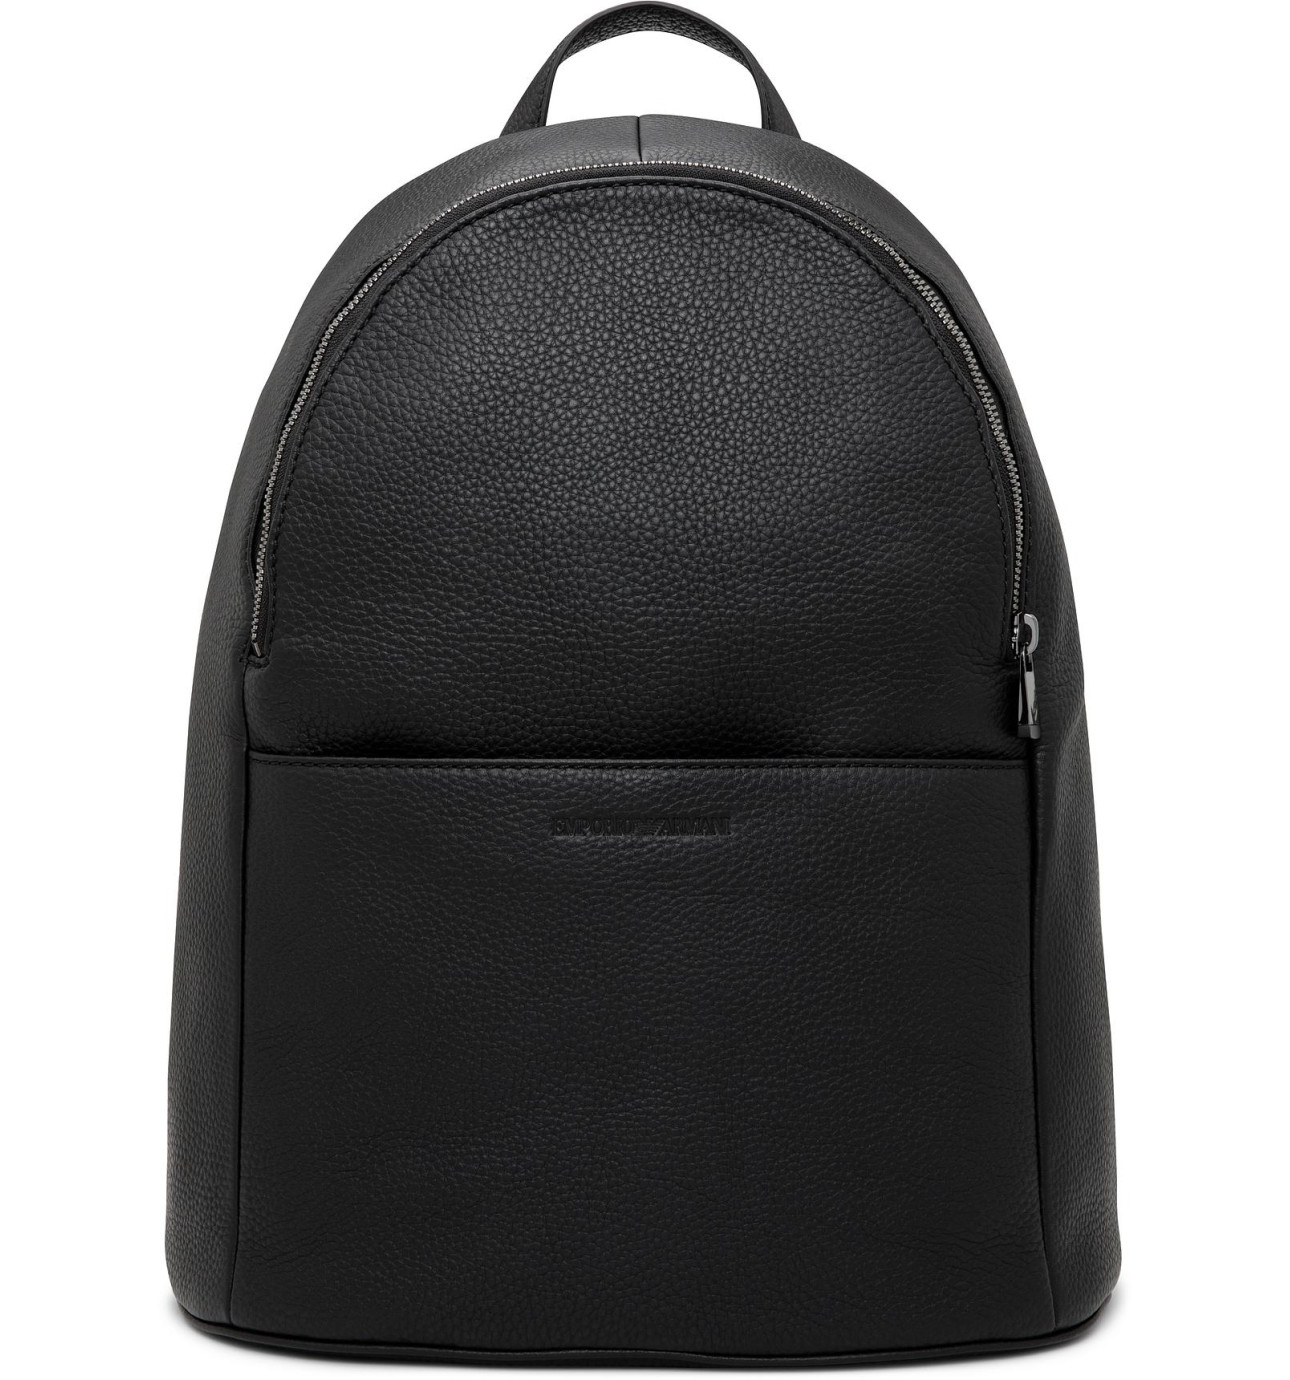 Men's Backpacks | Backpacks For Travel, Laptop & Work | David Jones